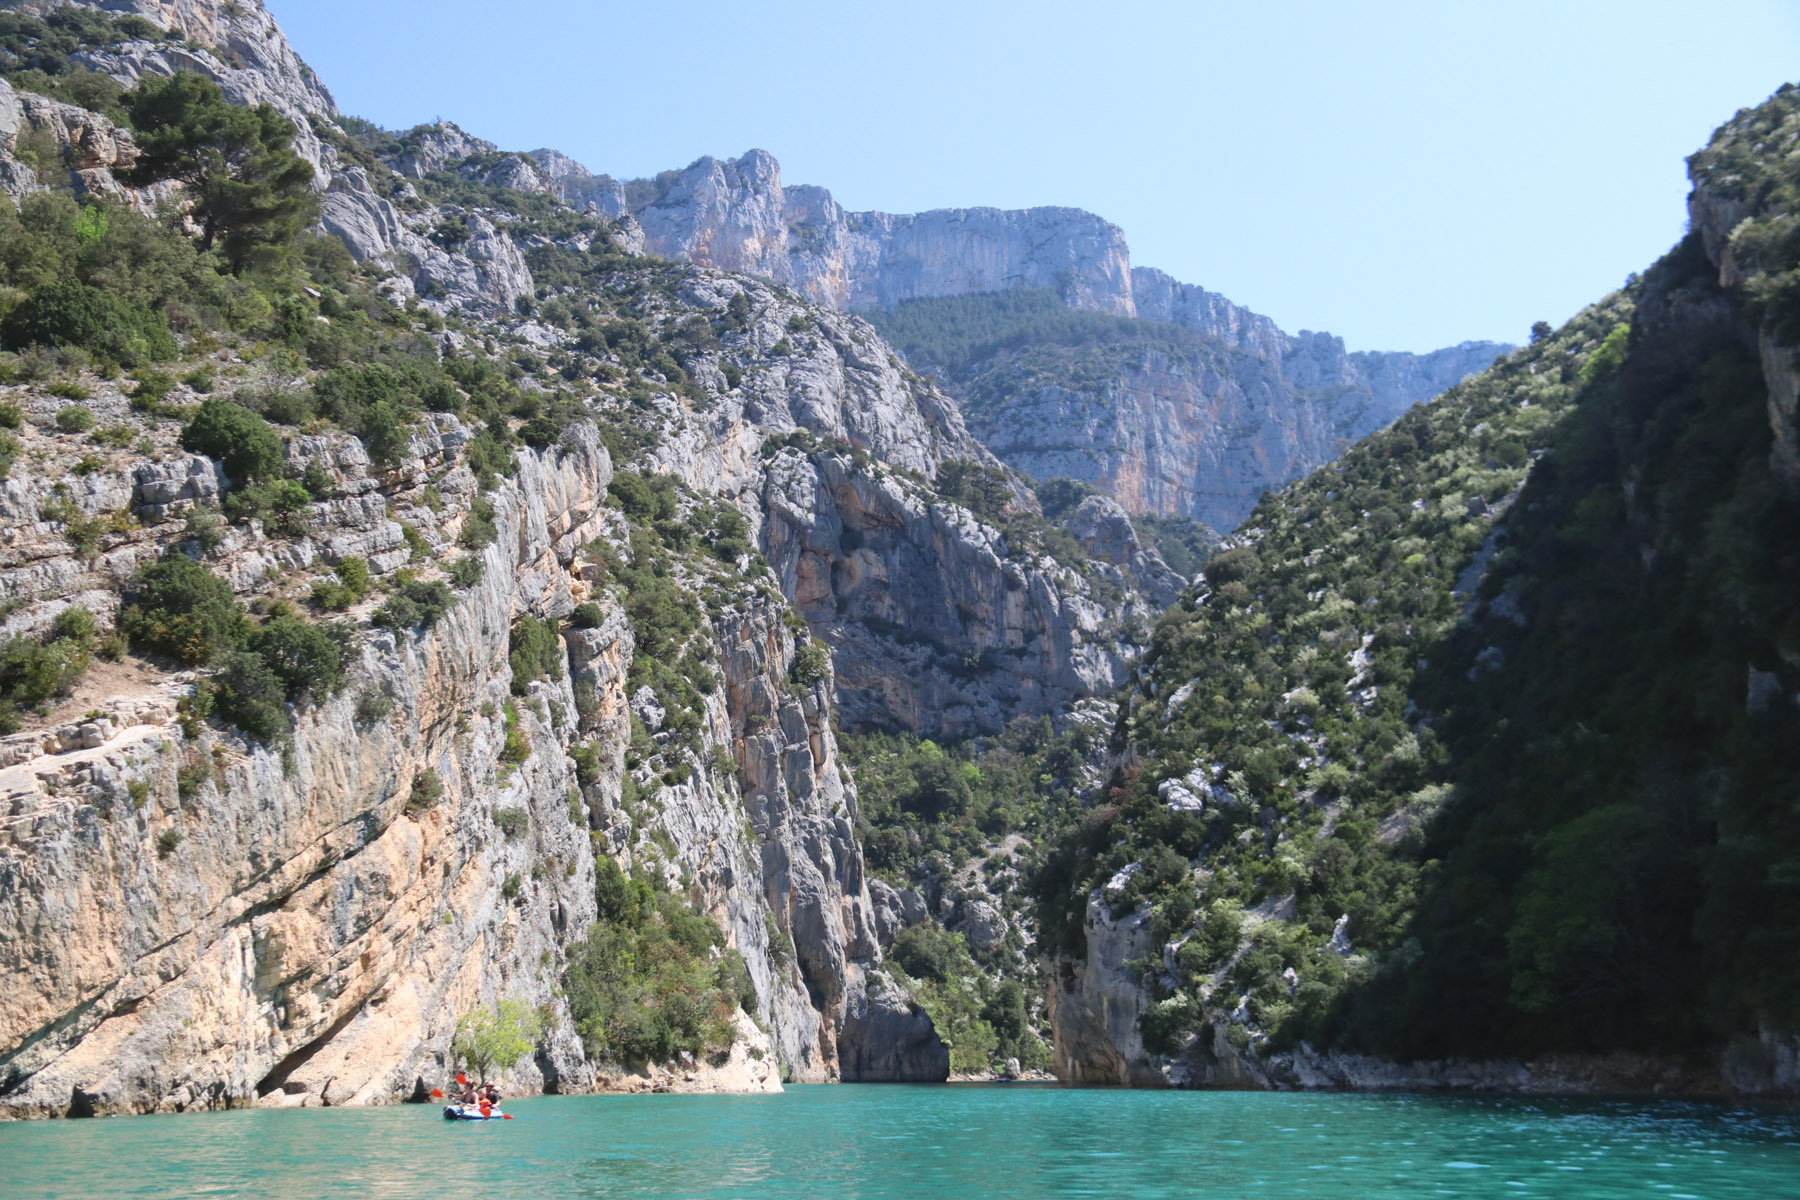 Varen in de Gorges du Verdon